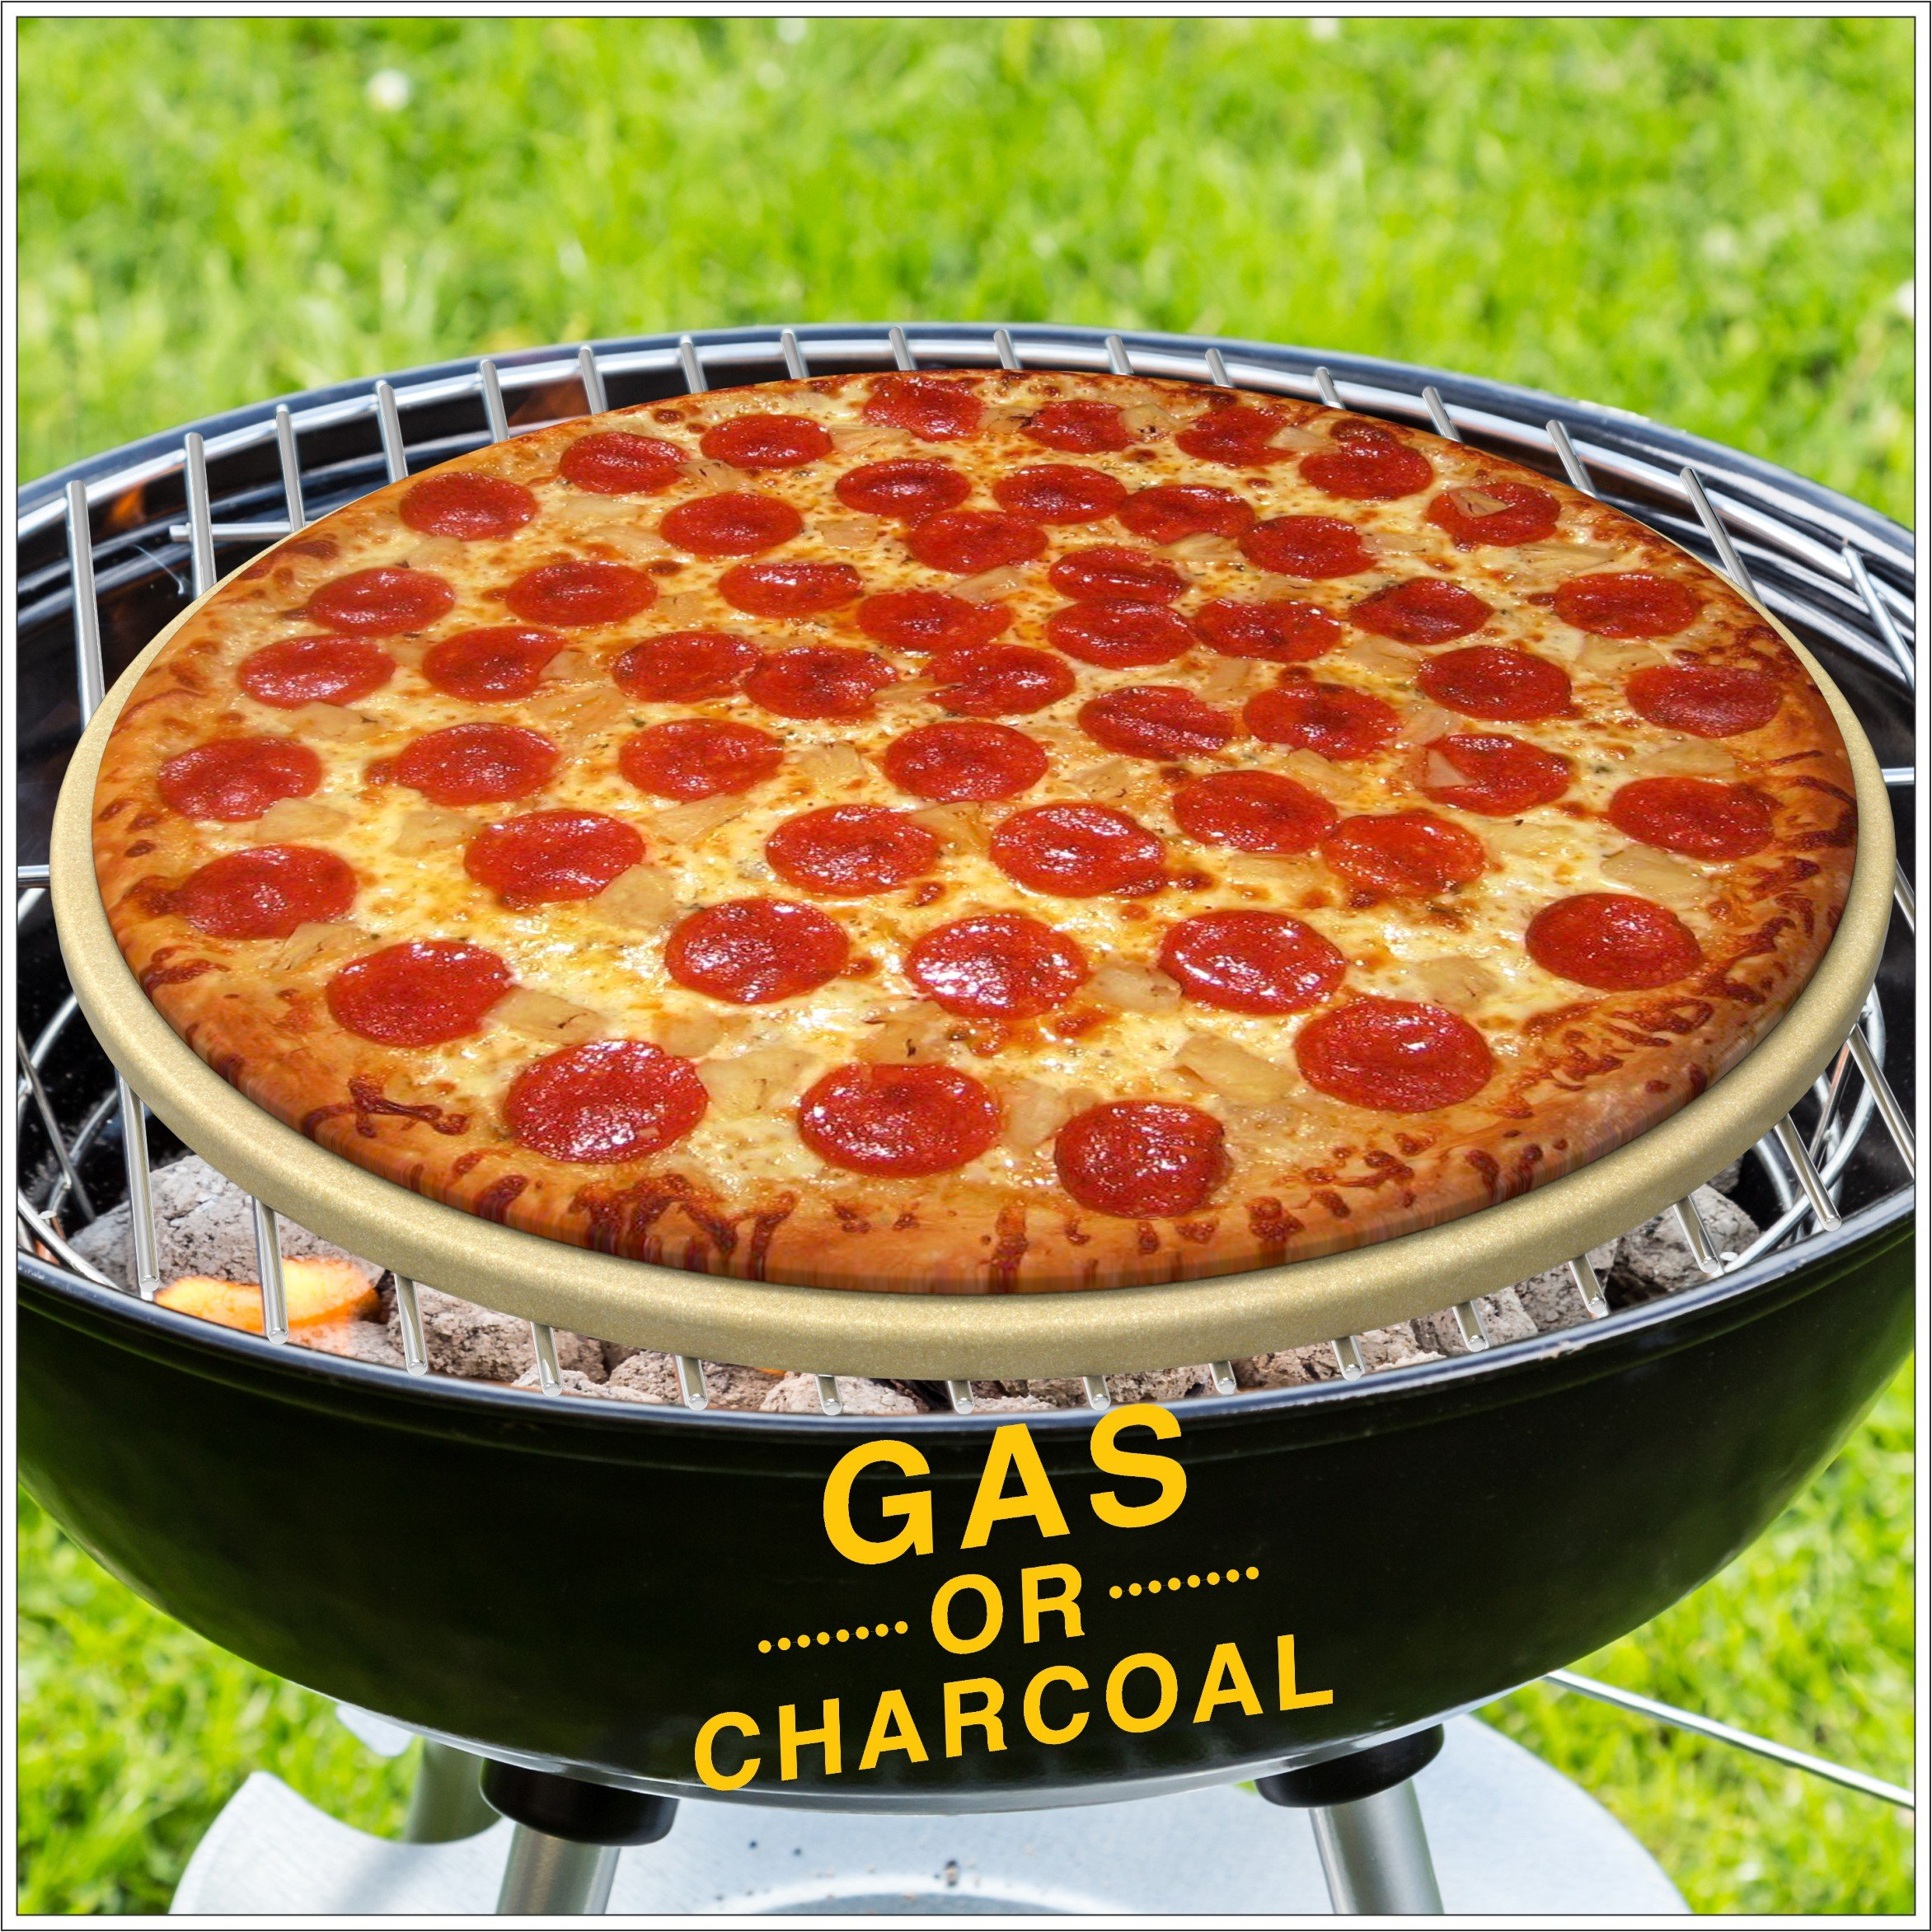 Pizza Stone for Best Crispy Crust Pizza, The Only Stoneware with Thermarite (Engineered Tuff Cordierite). Durable, Certified Safe, Ovens & Grills 16 Round, Bonus Recipe Ebook & Free Scraper by CastElegance (Image #4)